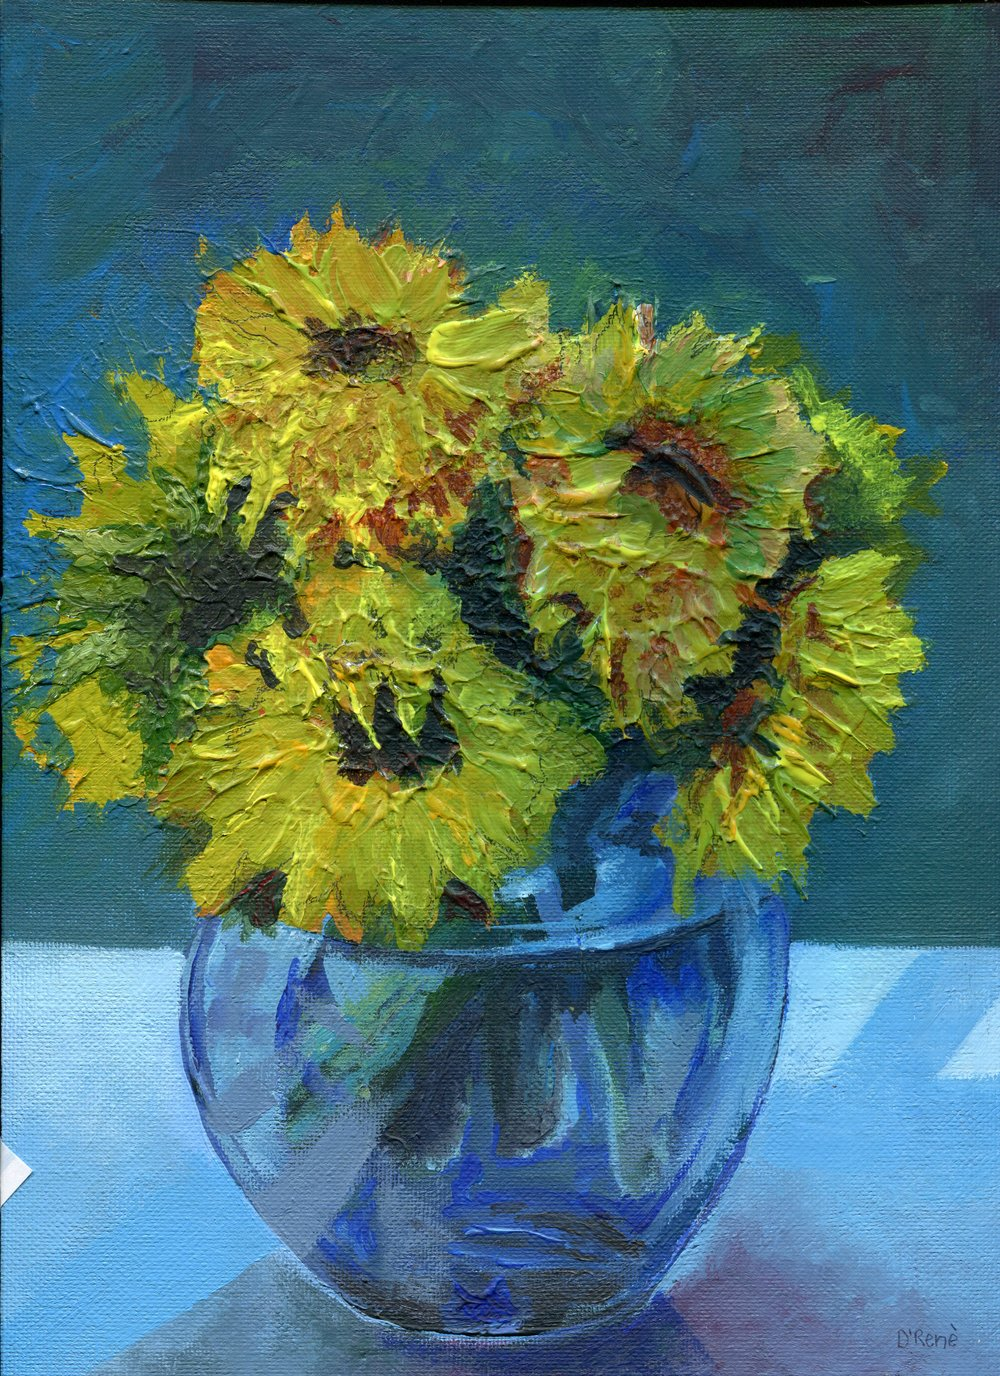 70A D'RENE PLUNKETT, SUNFLOWERS, ACRYLIC ON BOARD